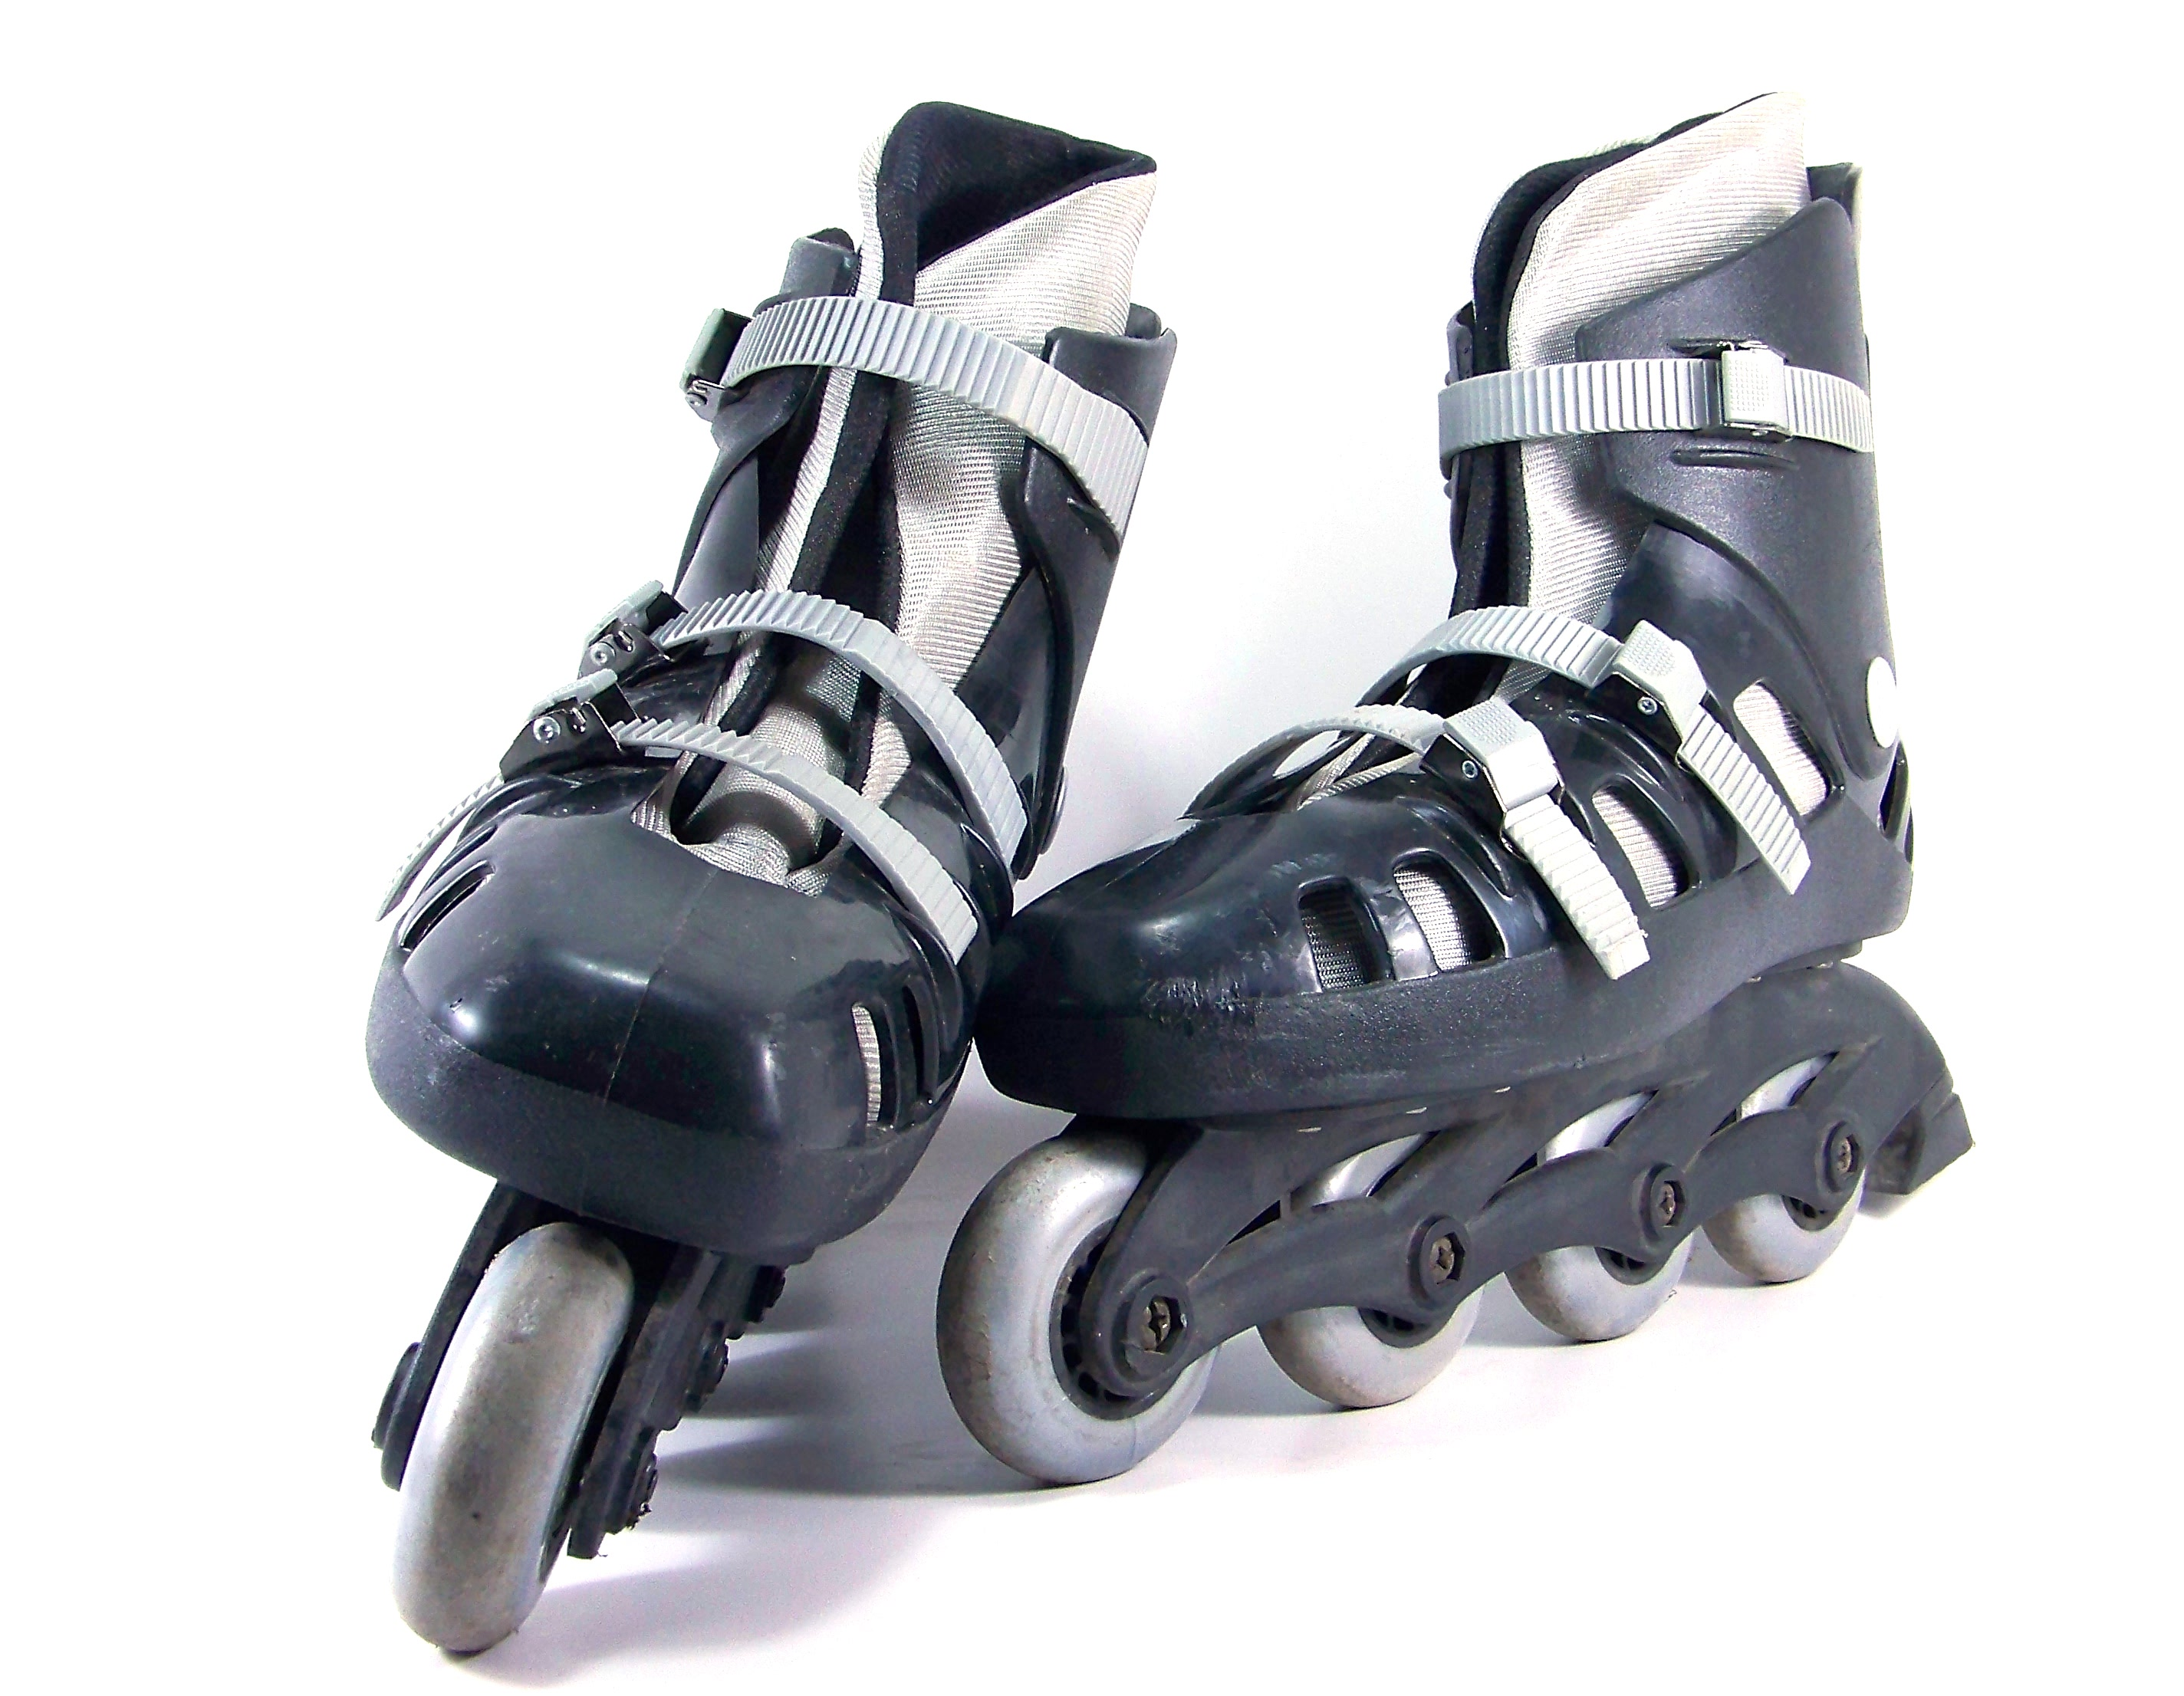 Rollers, Shoe, Outdoors, Plastic, Playing, HQ Photo